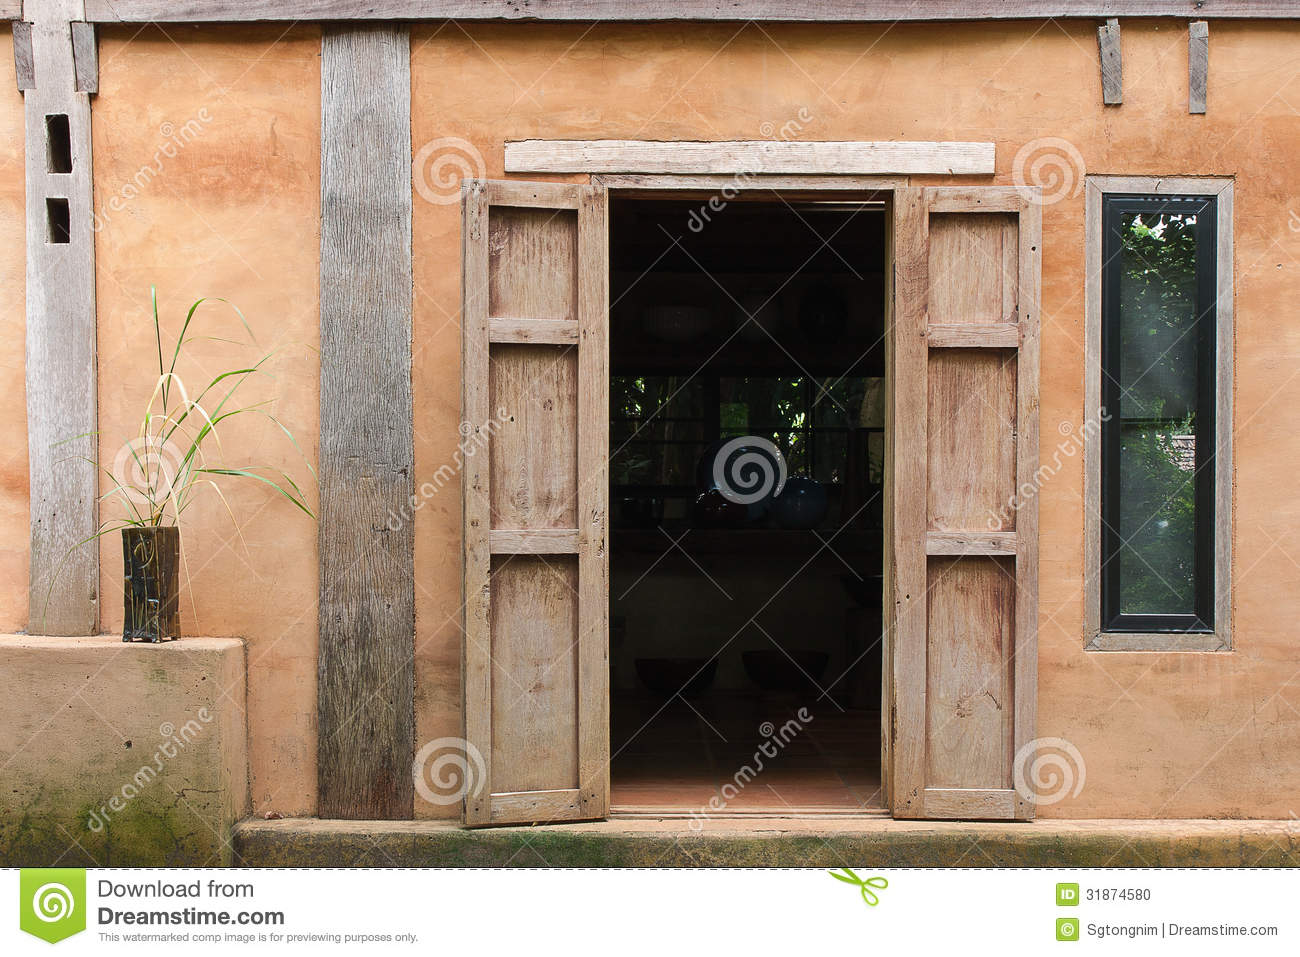 Old Town House Village Home Design Stock Photo - Image of open, town ...